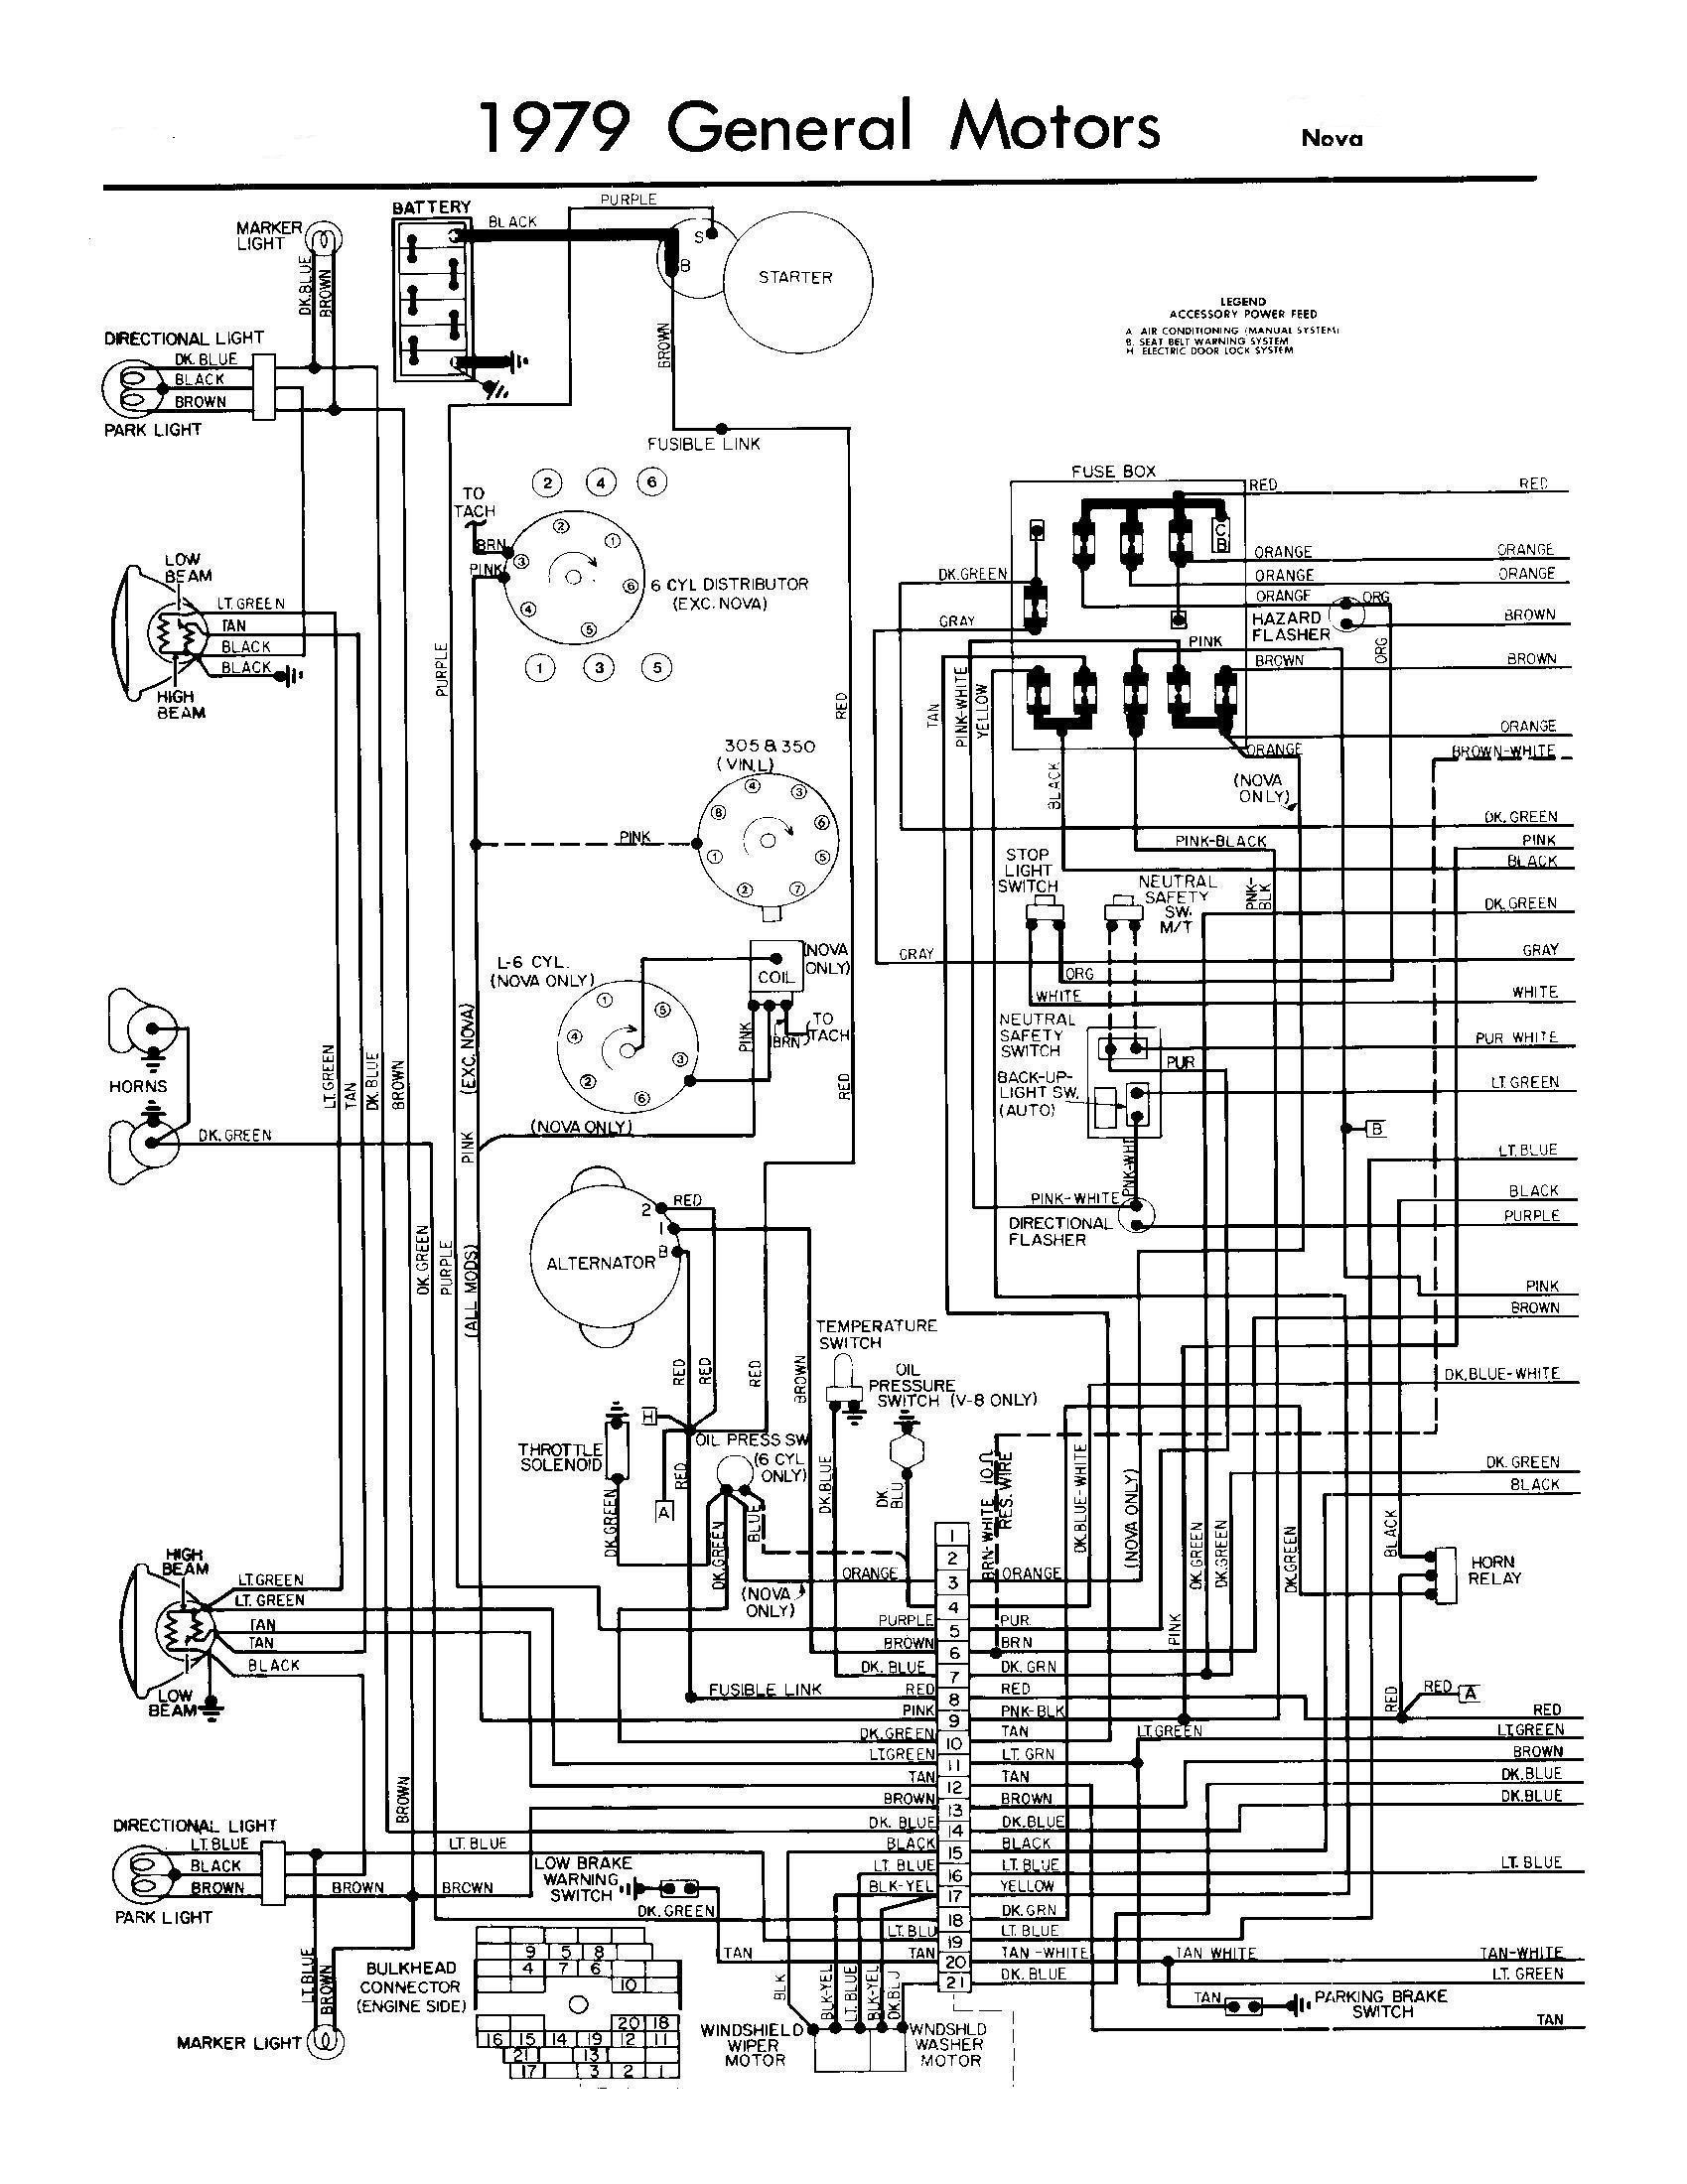 72 Gmc Windshield Wiper Wiring Wire Center Http Wwwrosepickupscom 5wayswitchwiringdiagramjpg 75 Nova Diagram Example Electrical U2022 Rh Emilyalbert Co Ford Motor 1994s 10 Wind Shield